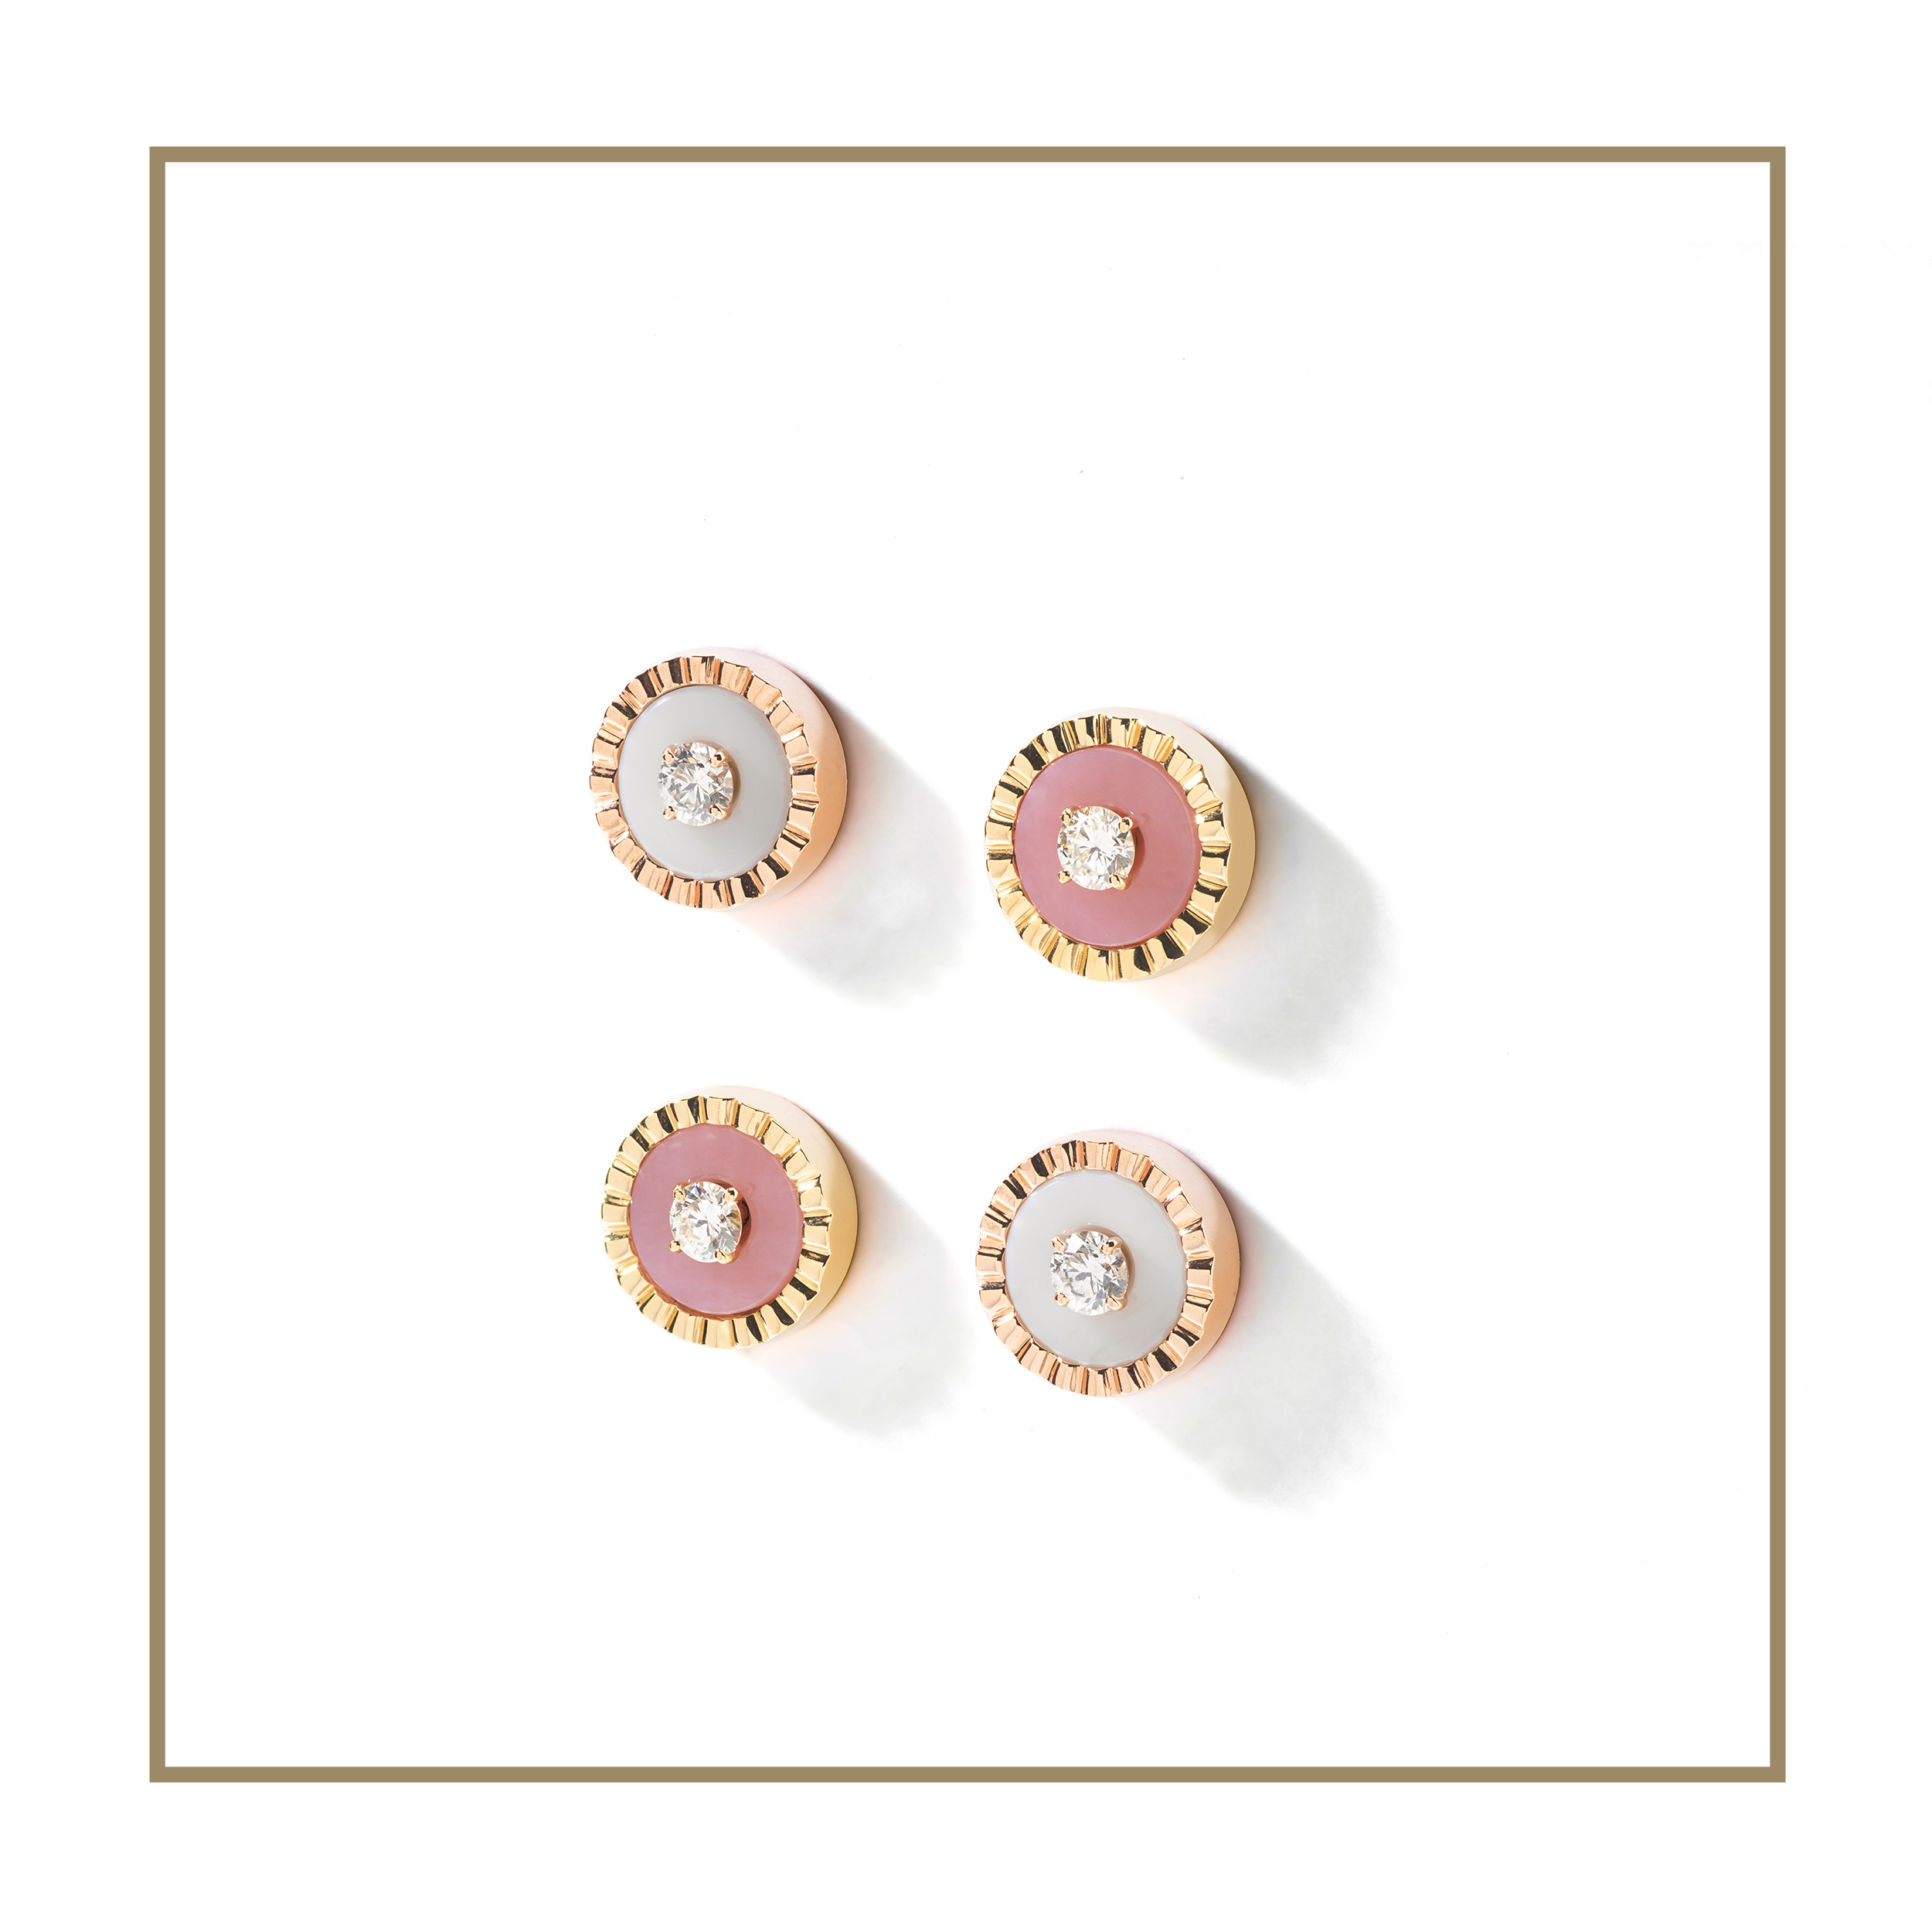 - PLAYFUL. COLORFUL. MAGICAL.Coco is the story of a sparkling star floating in a sea of intense color.The collection combines the simplicity of a perfect circle with the emotion of a magical light. The joy of the gemstones meets the wonder of the diamond.A craftsmanship story of emotions.